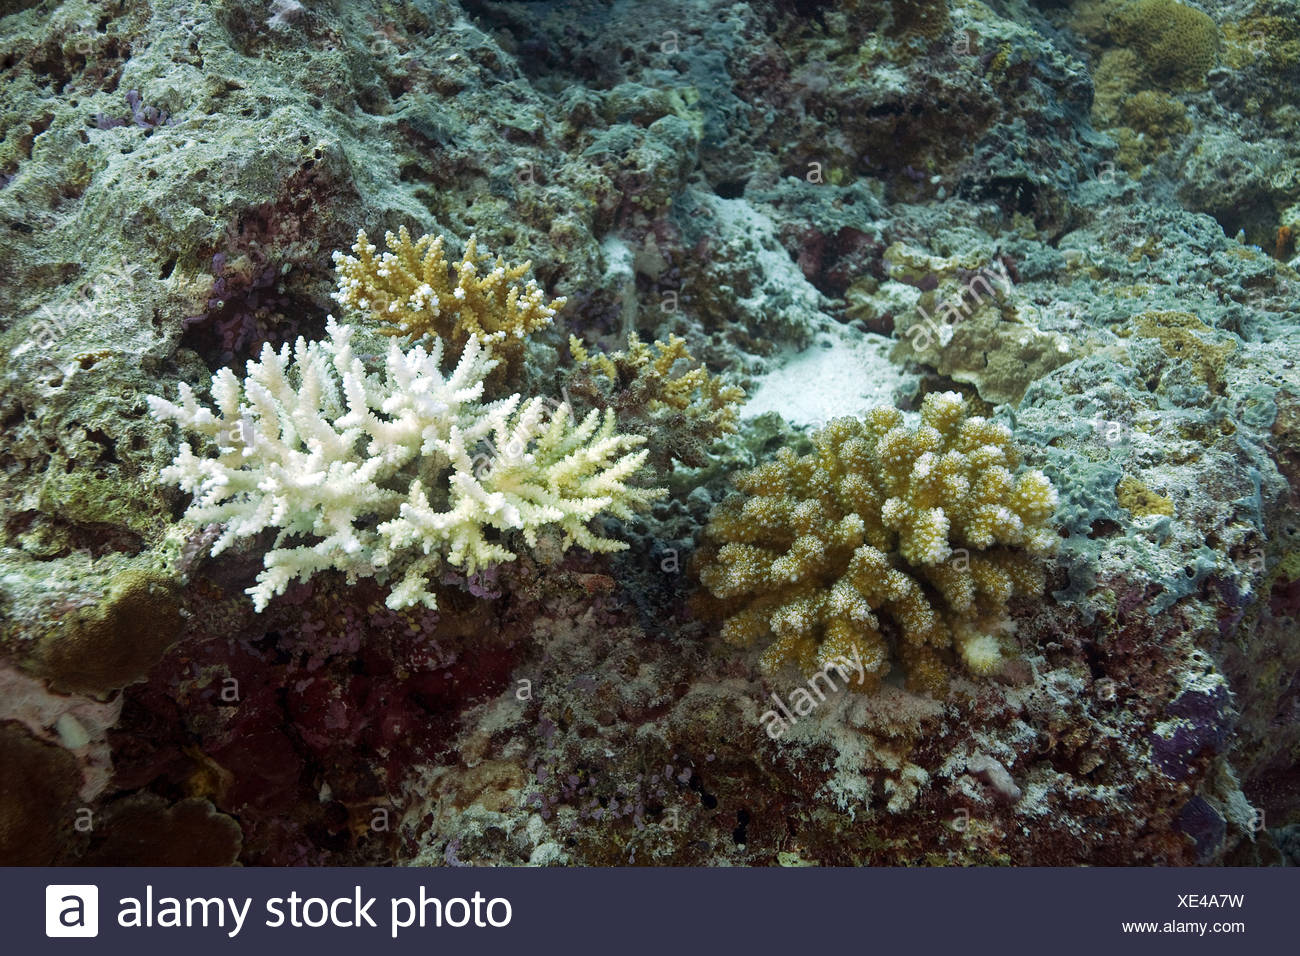 Coral bleaching by El Ninjo, consequences of global climate change and climate warming, Maldives, Indian Ocean, Asia - Stock Image